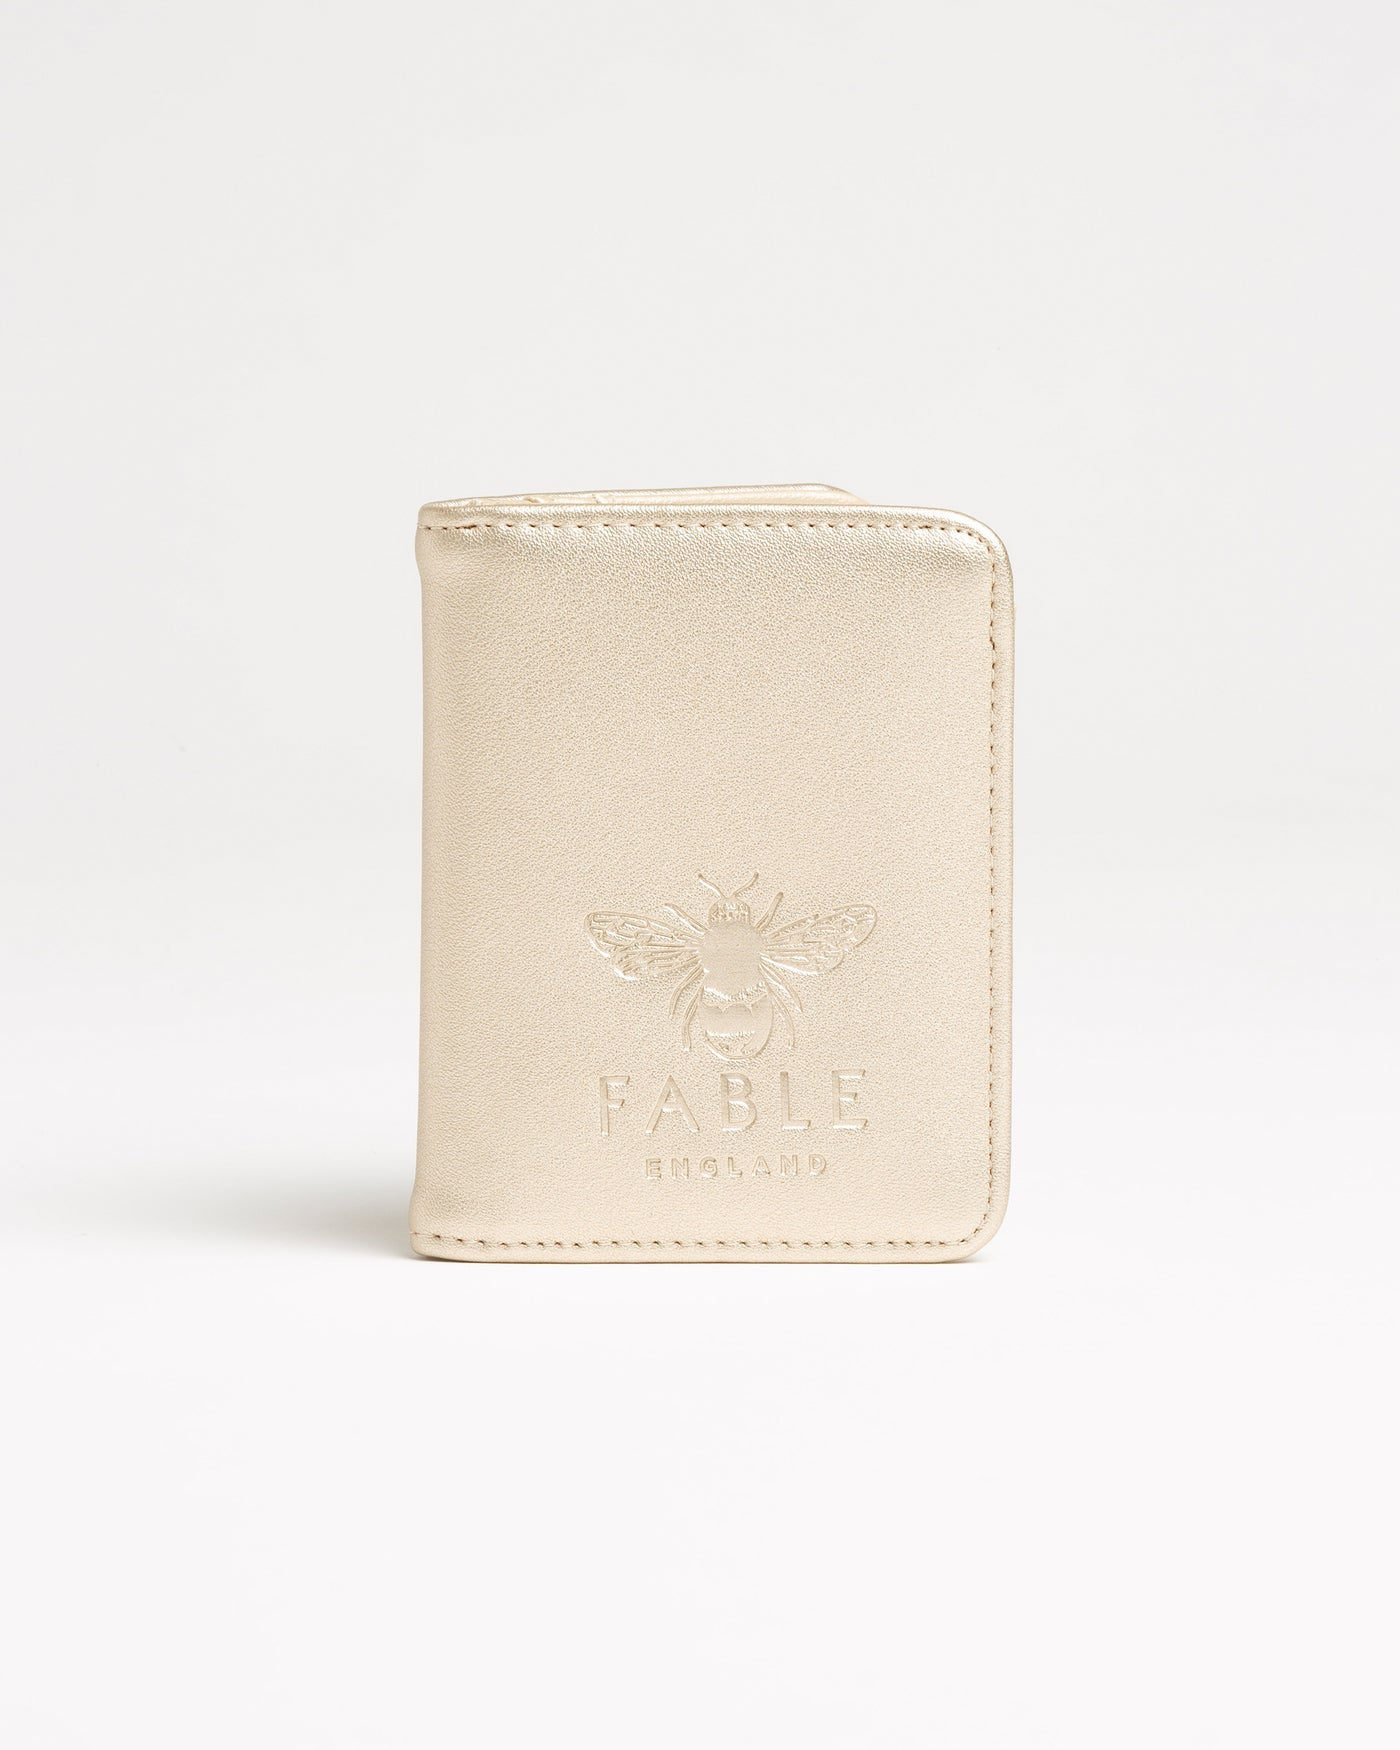 Foxglove Mink Card Holder